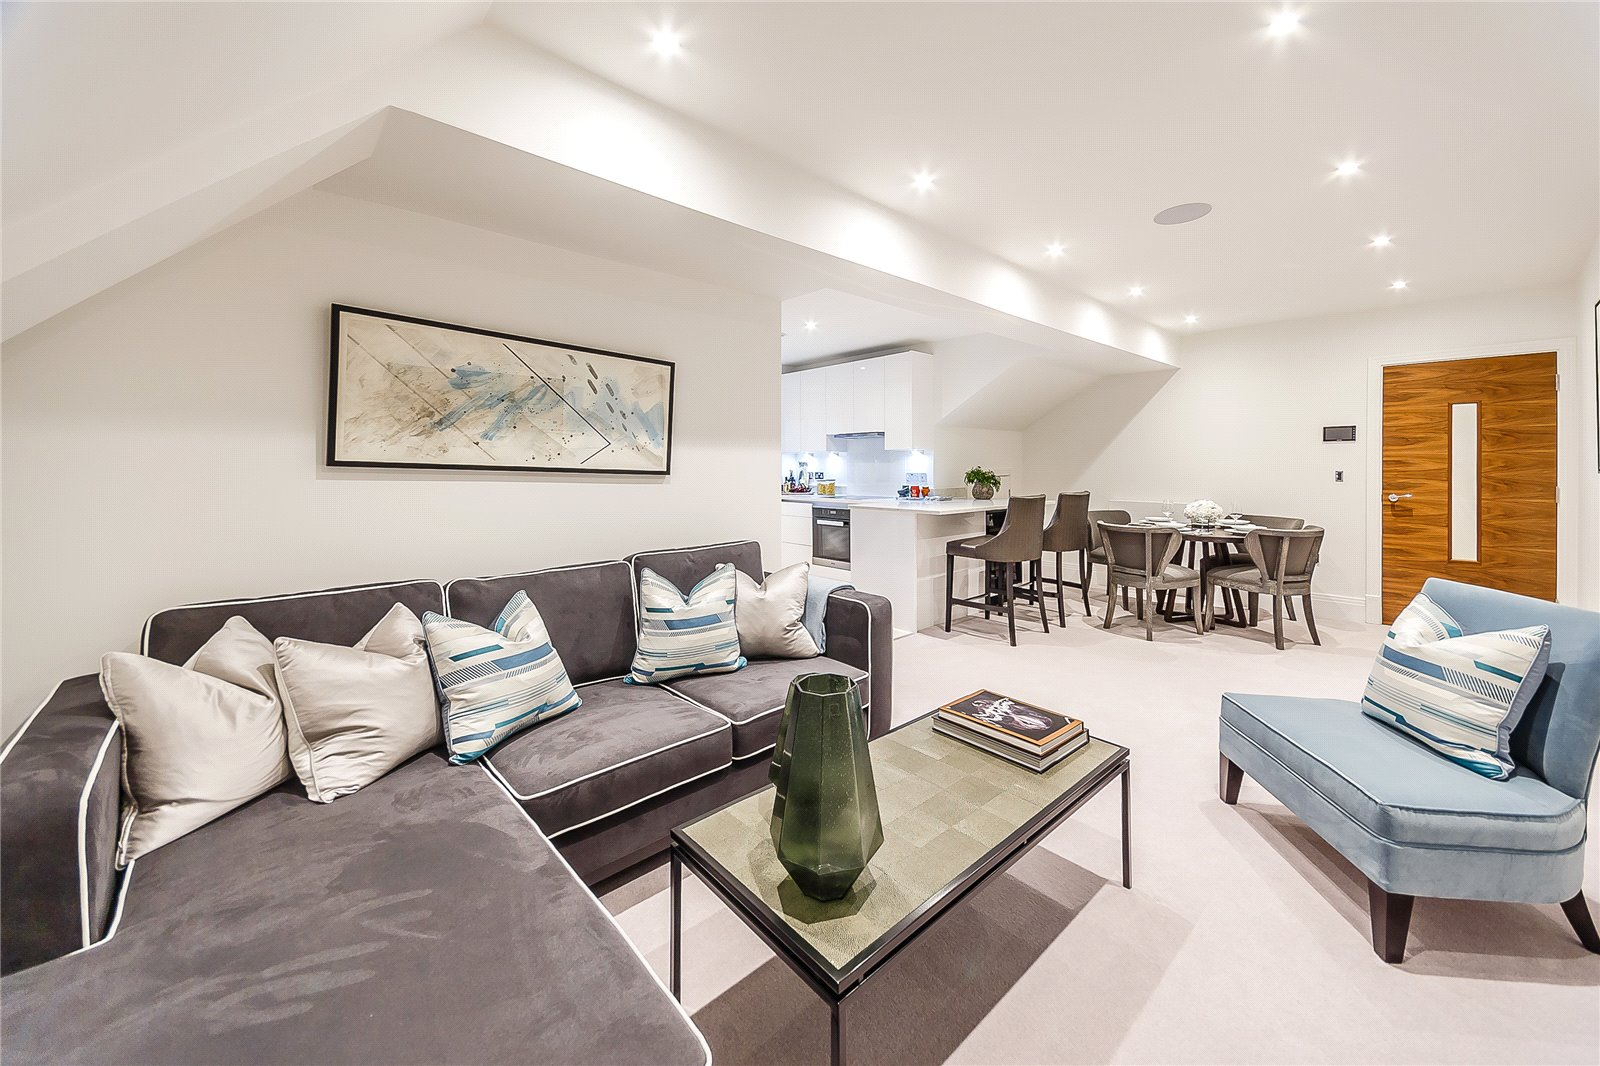 Apartment for Rent at Palace Wharf, Rainville Road, Fulham, London, W6 Palace Wharf, Rainville Road, Fulham, London, W6